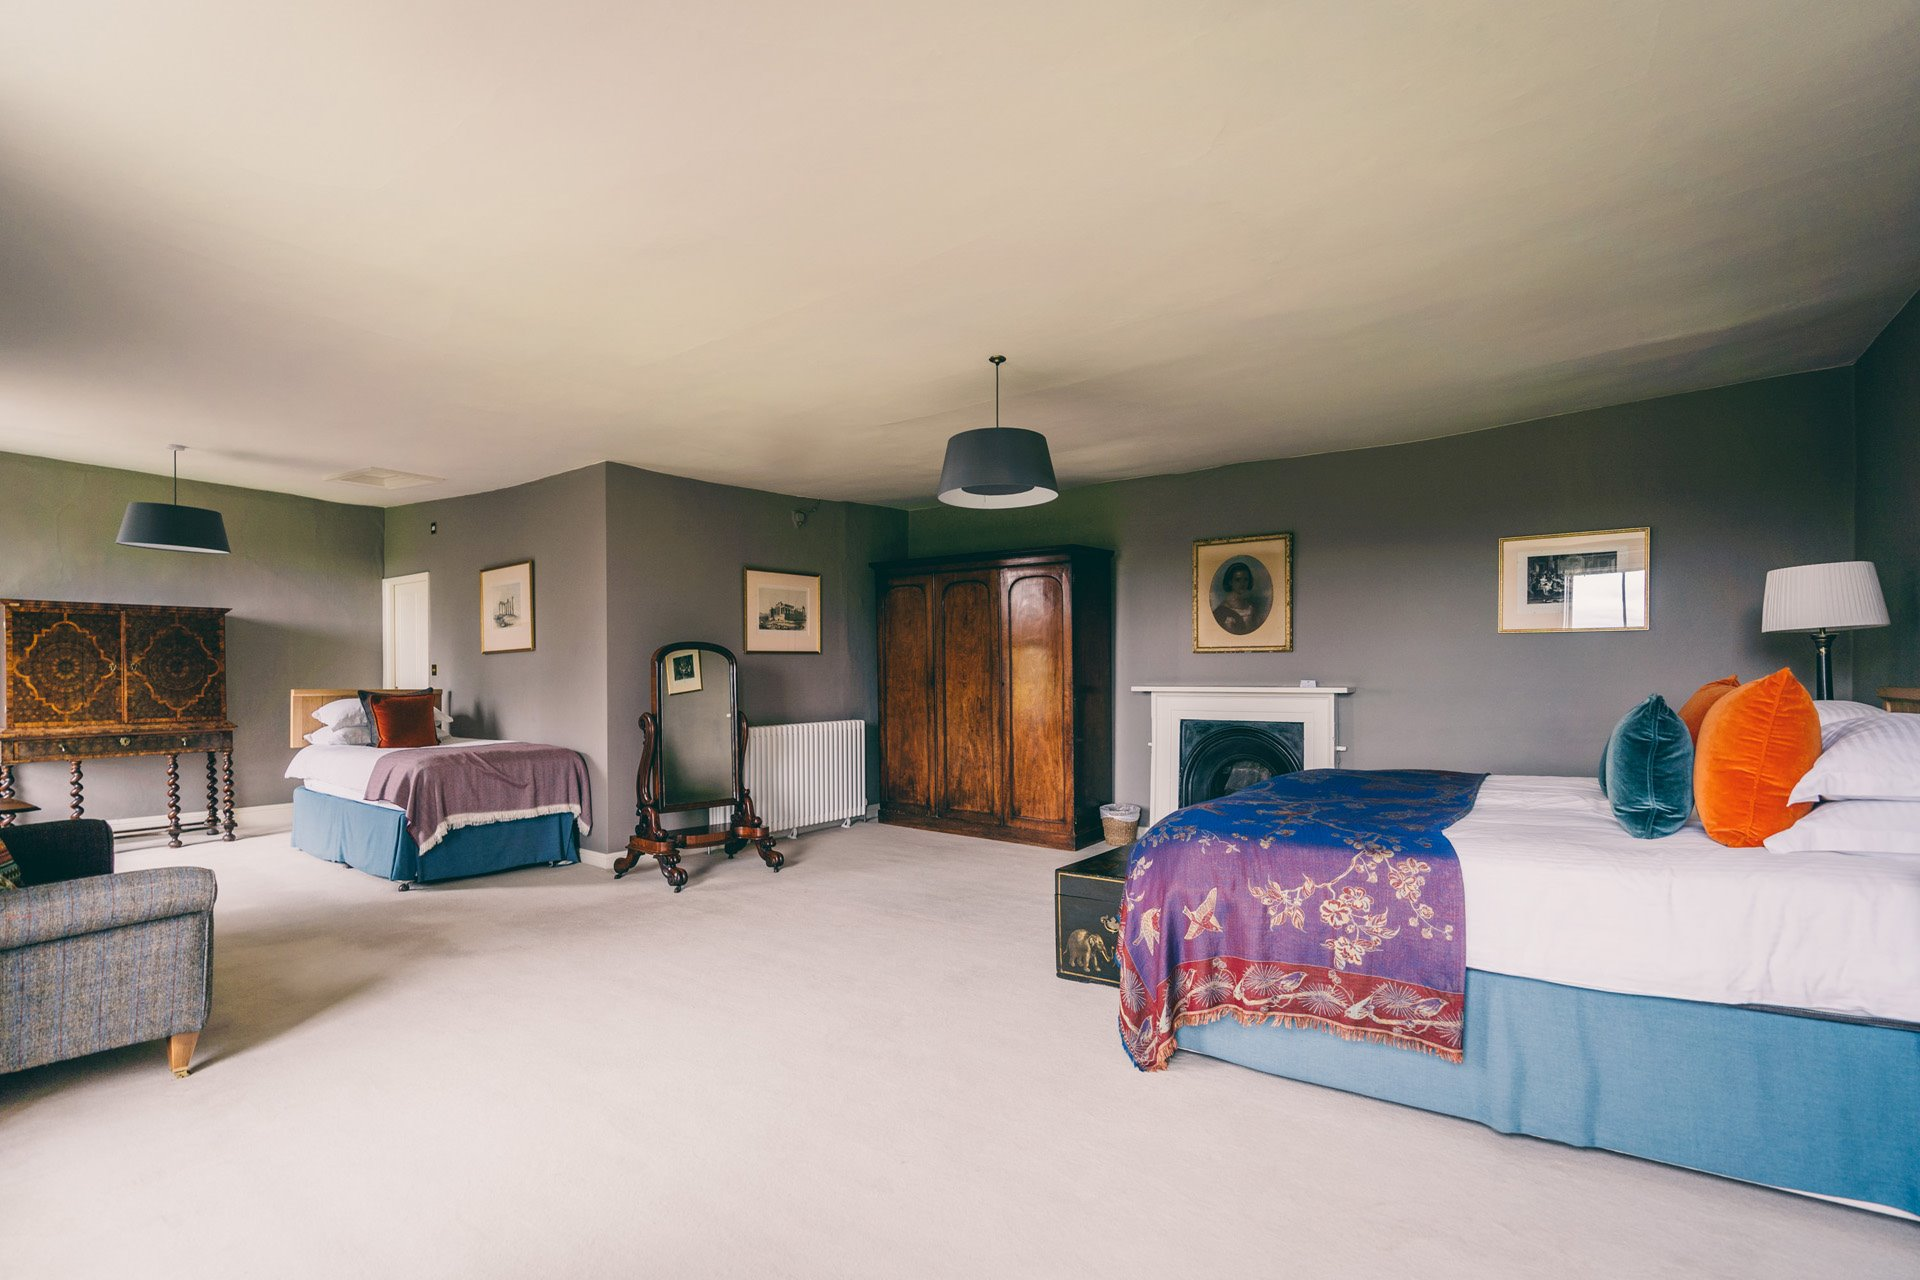 Nursery room wedding guest accommodation at Elmore Court